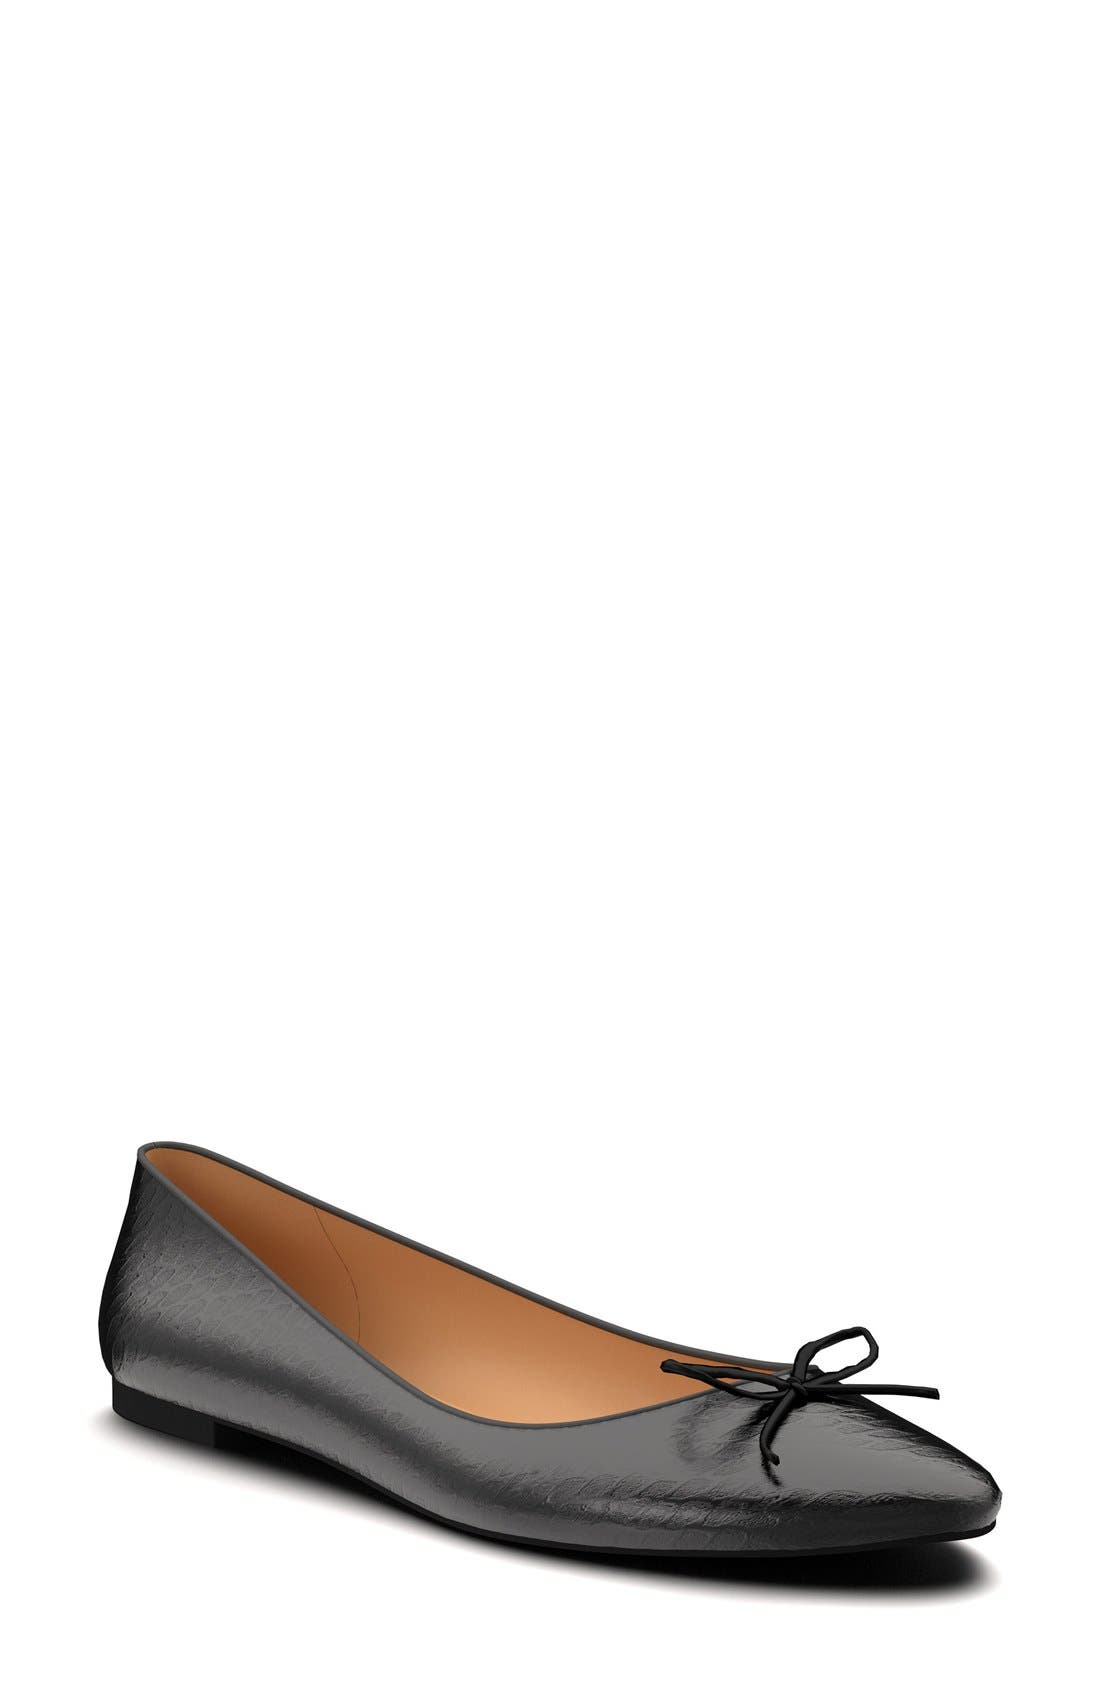 Shoes of Prey Ballet Flat (Women)